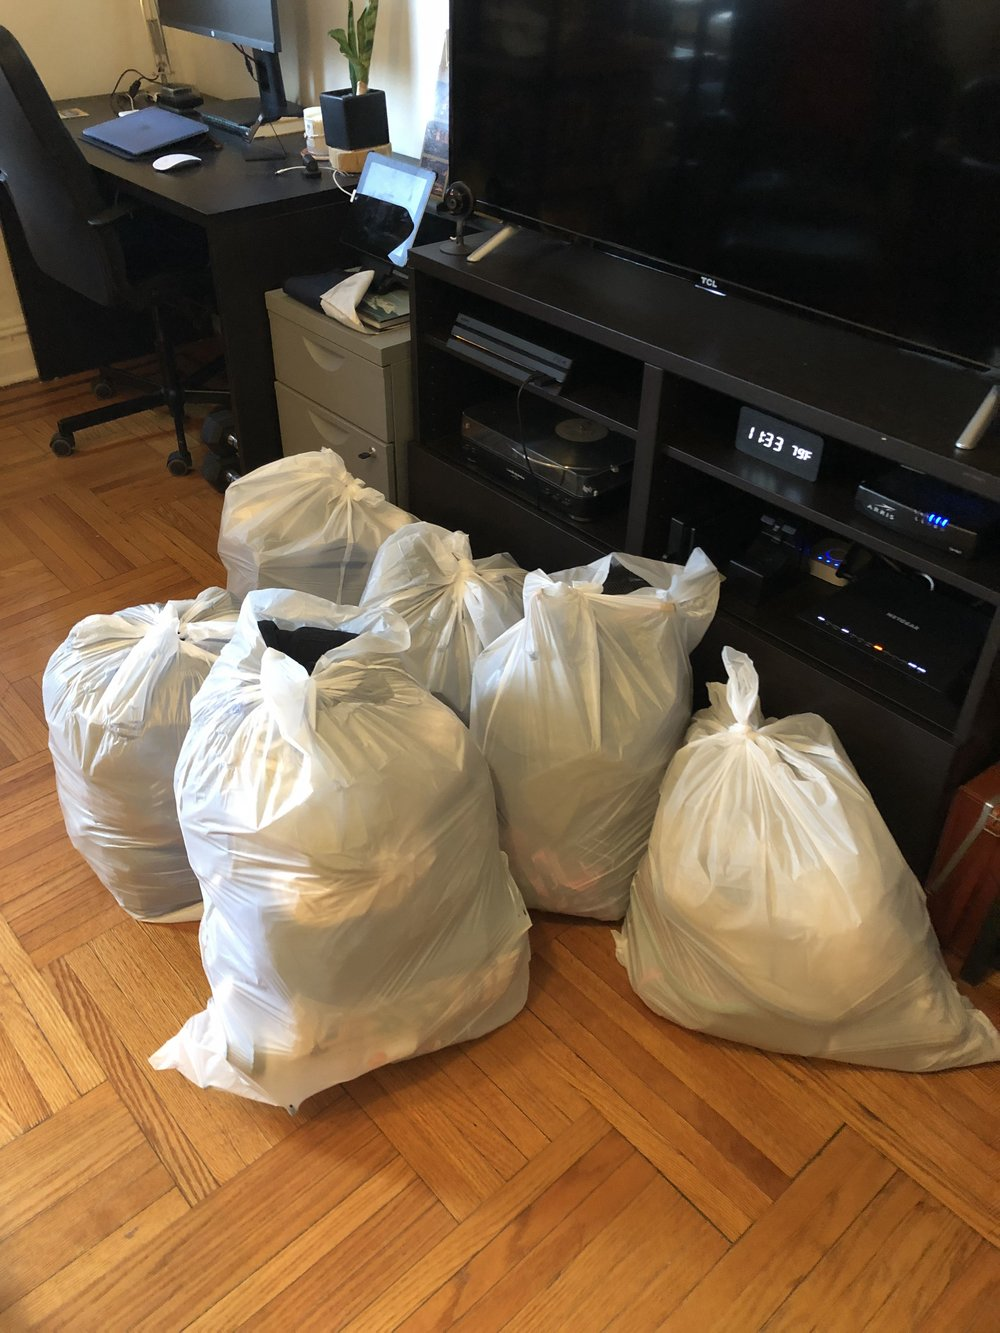 19 total - Full 13-gallon trash bags